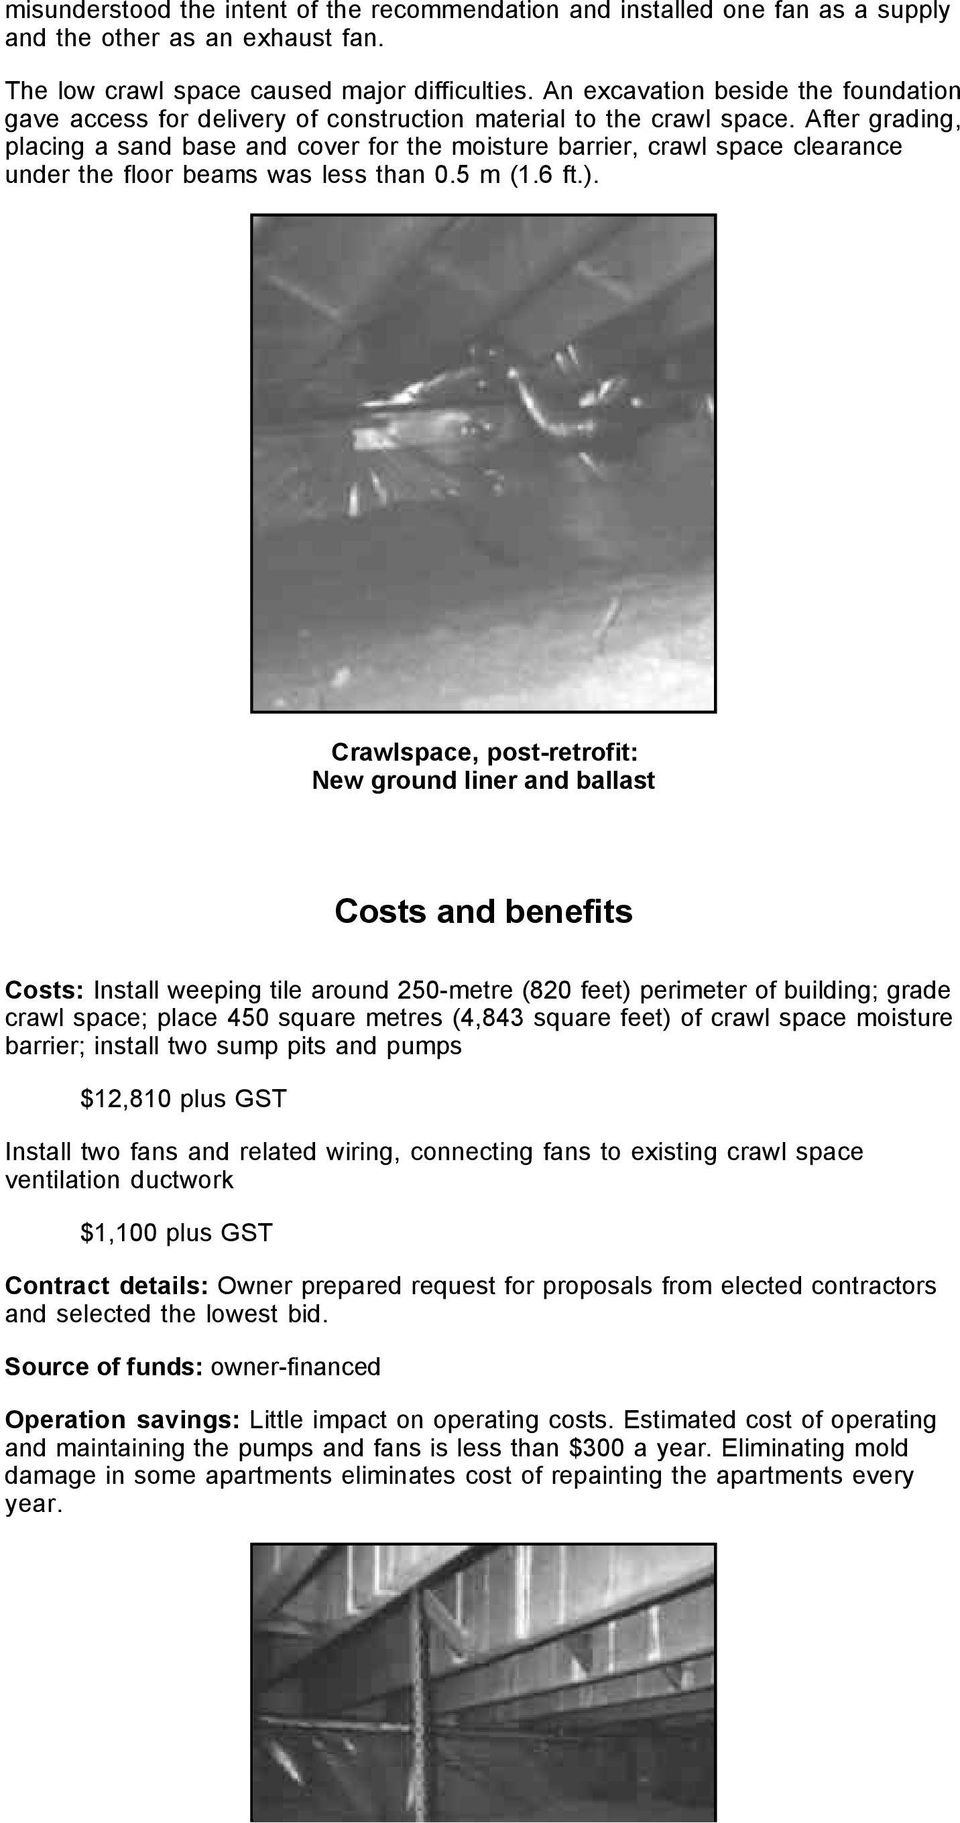 After grading, placing a sand base and cover for the moisture barrier, crawl space clearance under the floor beams was less than 0.5 m (1.6 ft.).